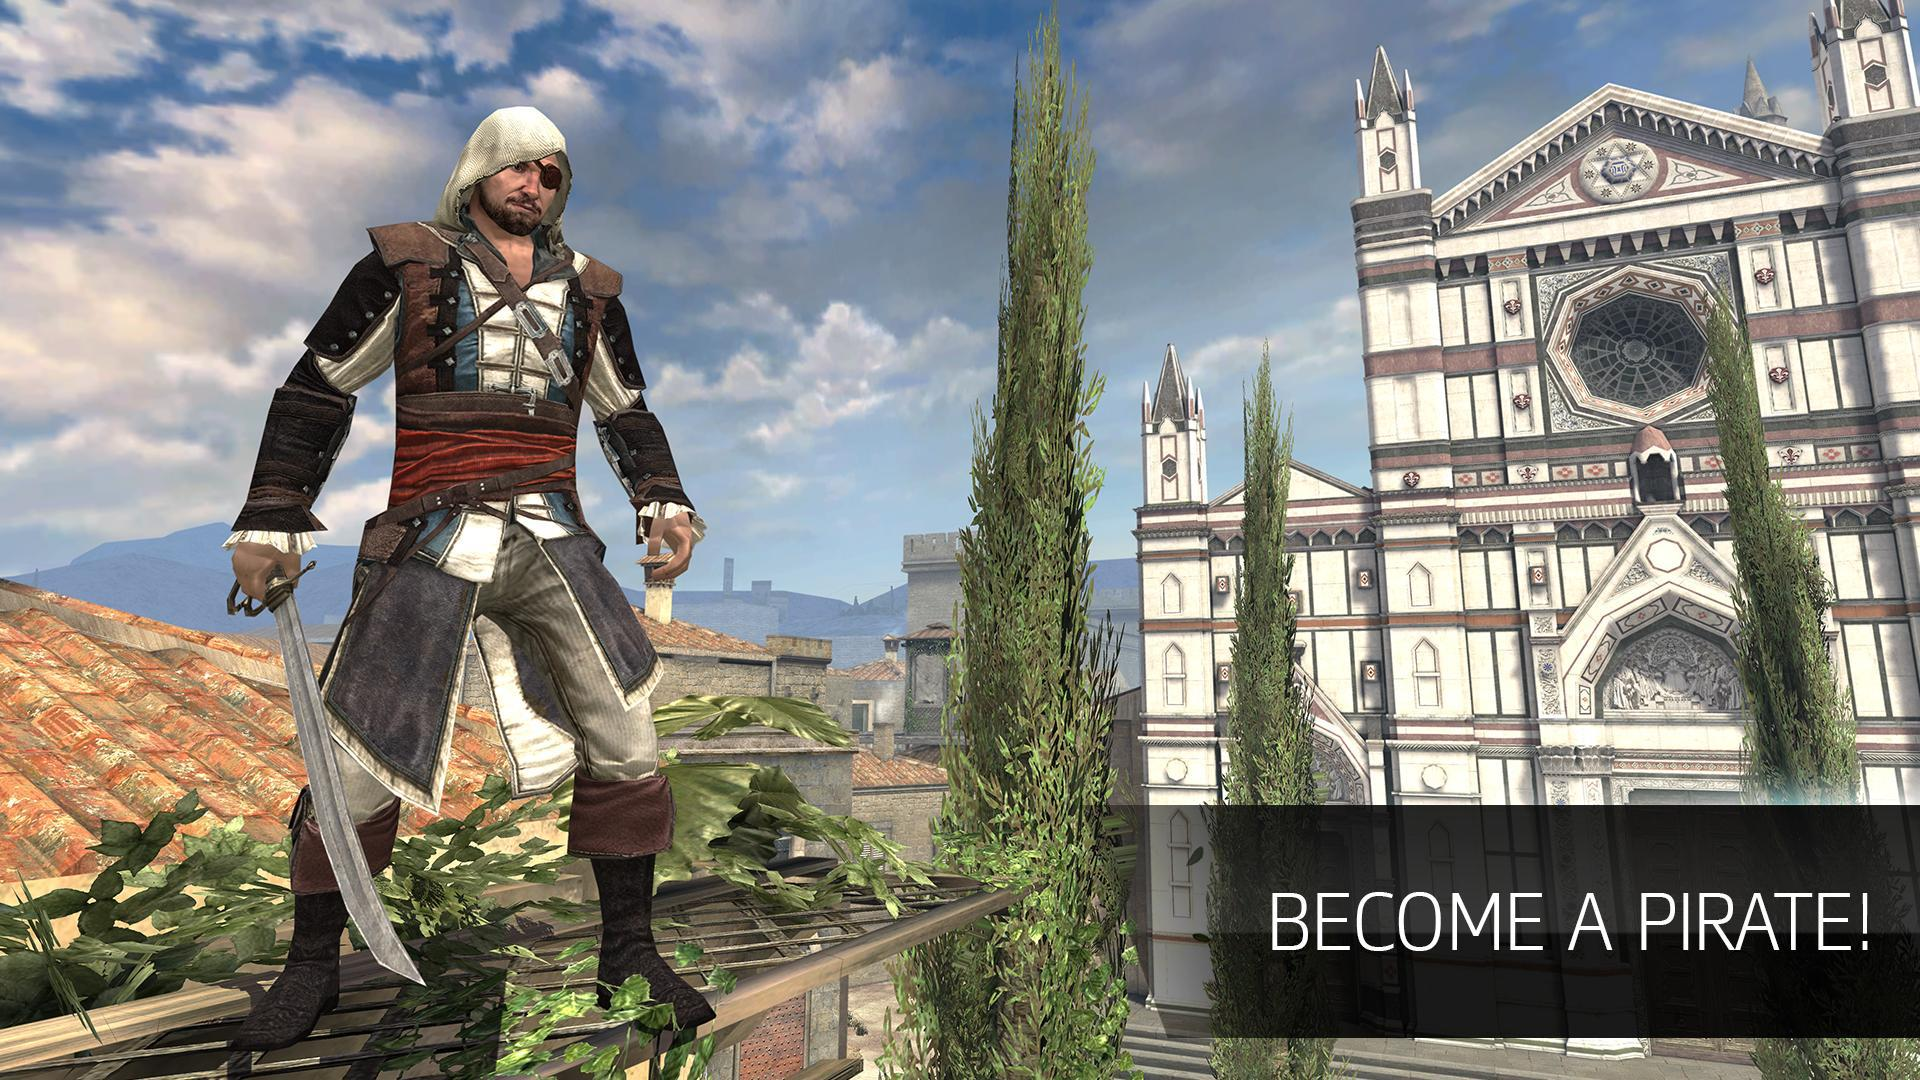 刺客信条:本色(Assassin's Creed Identity) 游戏截图4